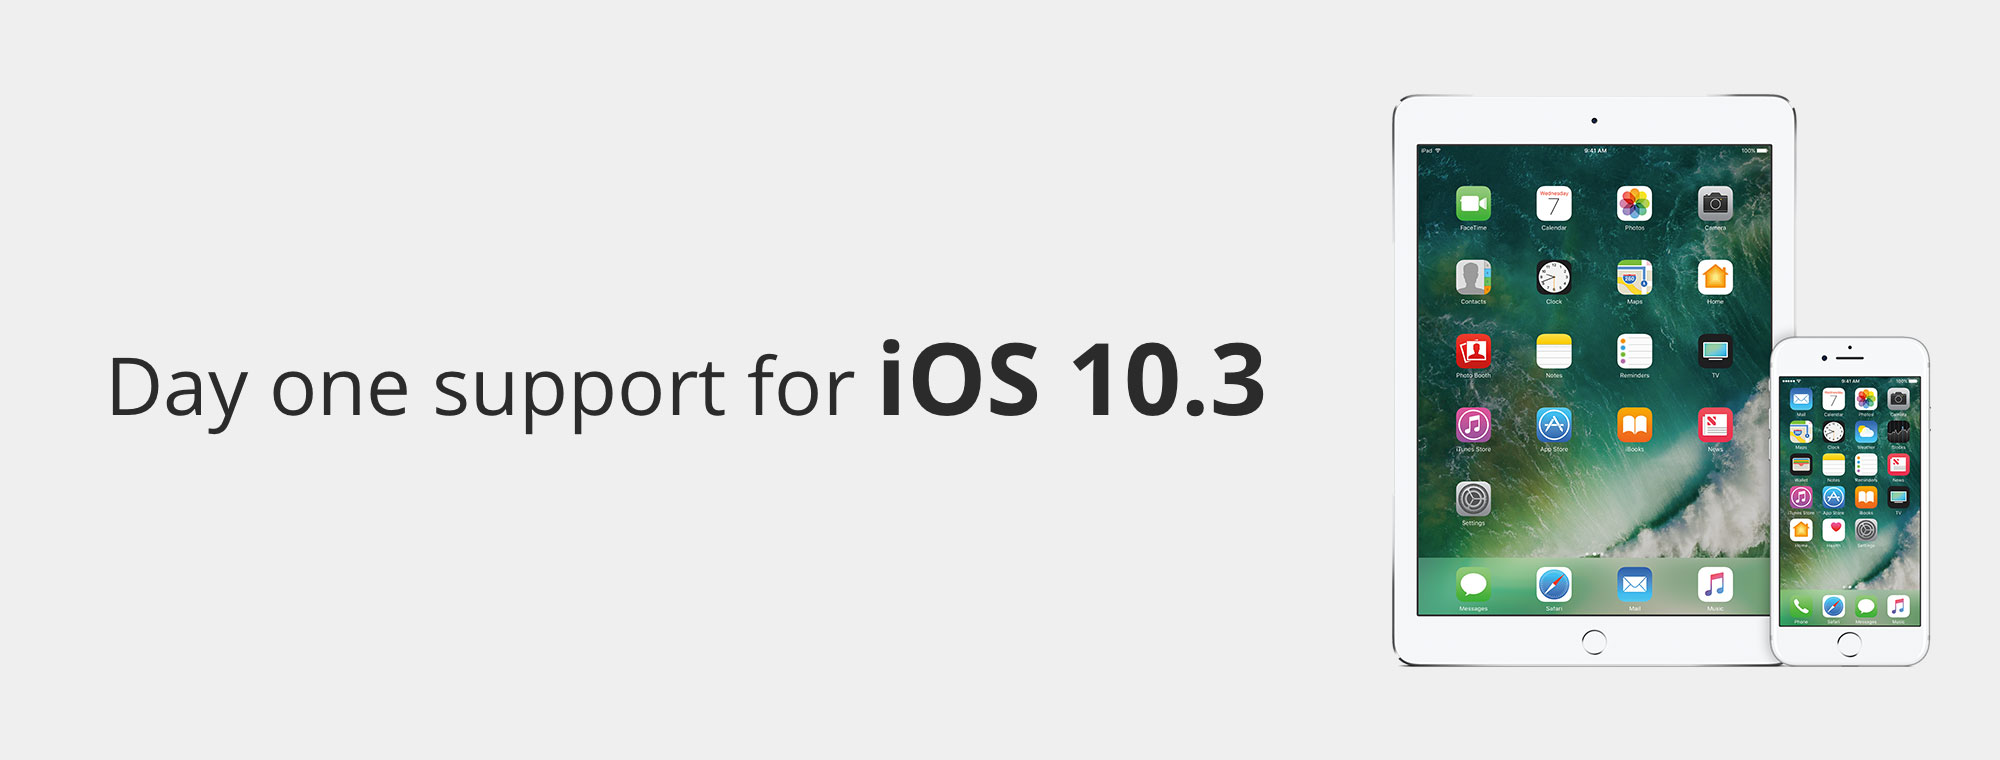 ios 10.3 support